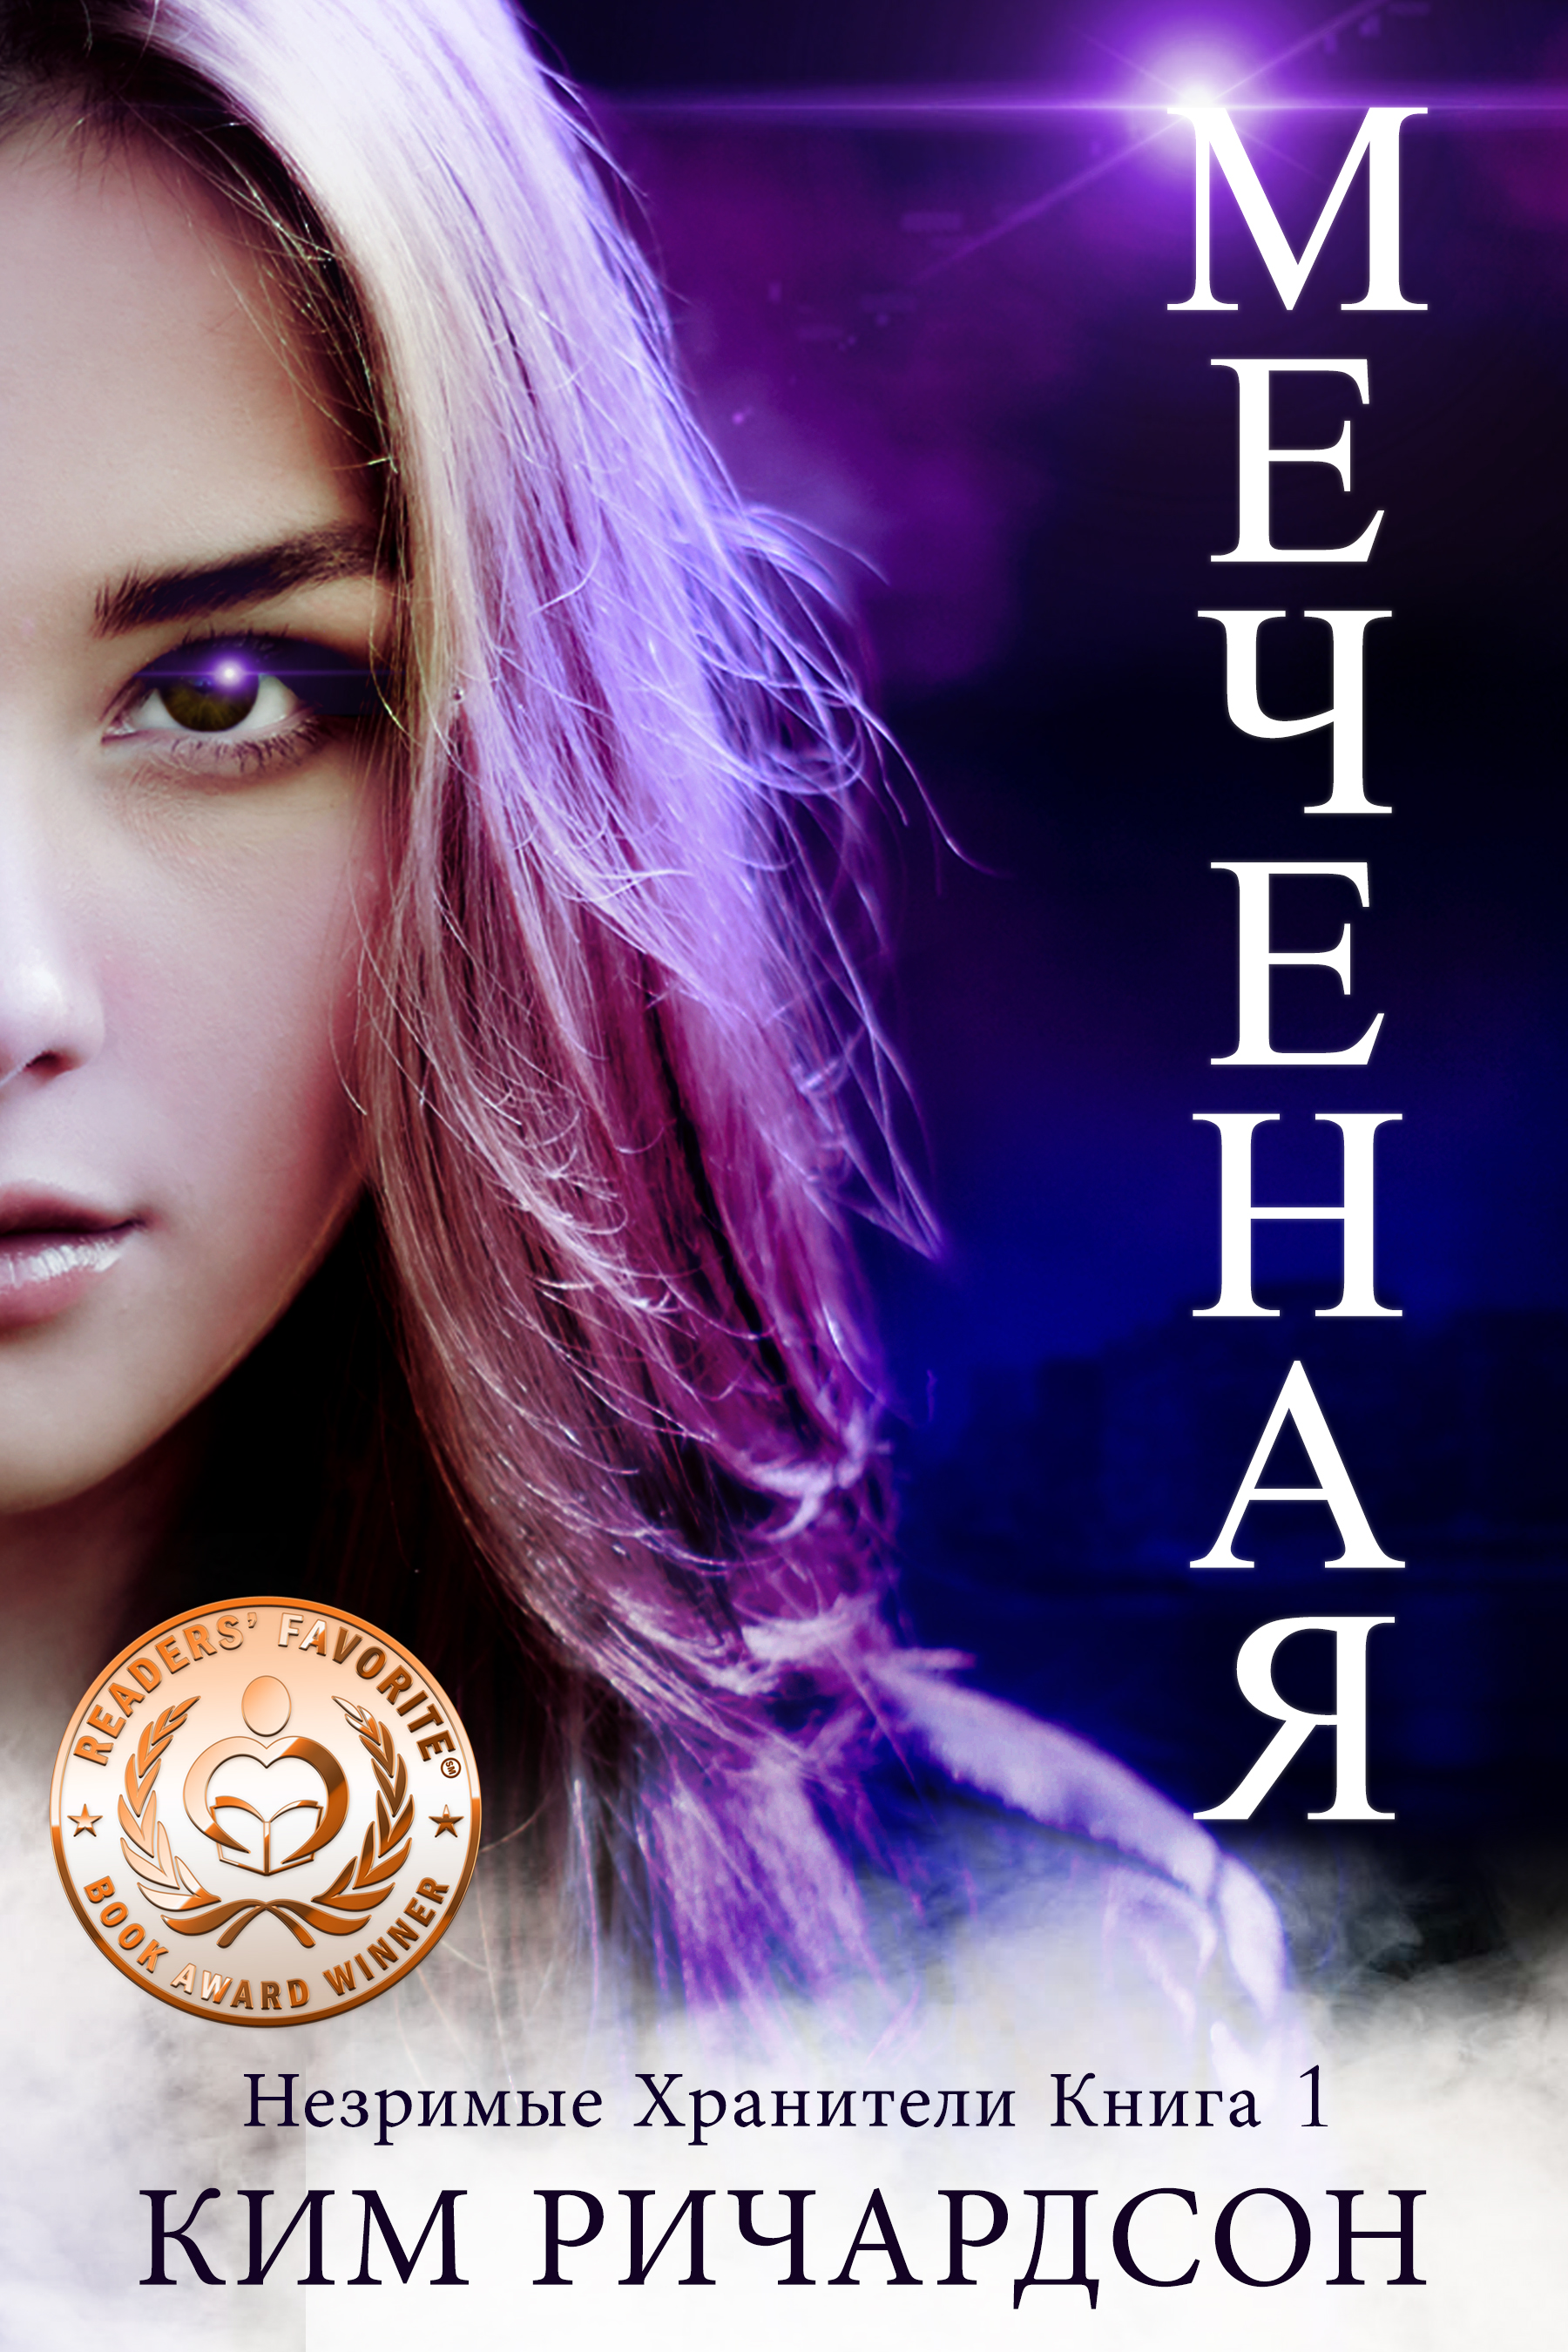 Elemental, soul guardians book 2 kim richardson wattpad.